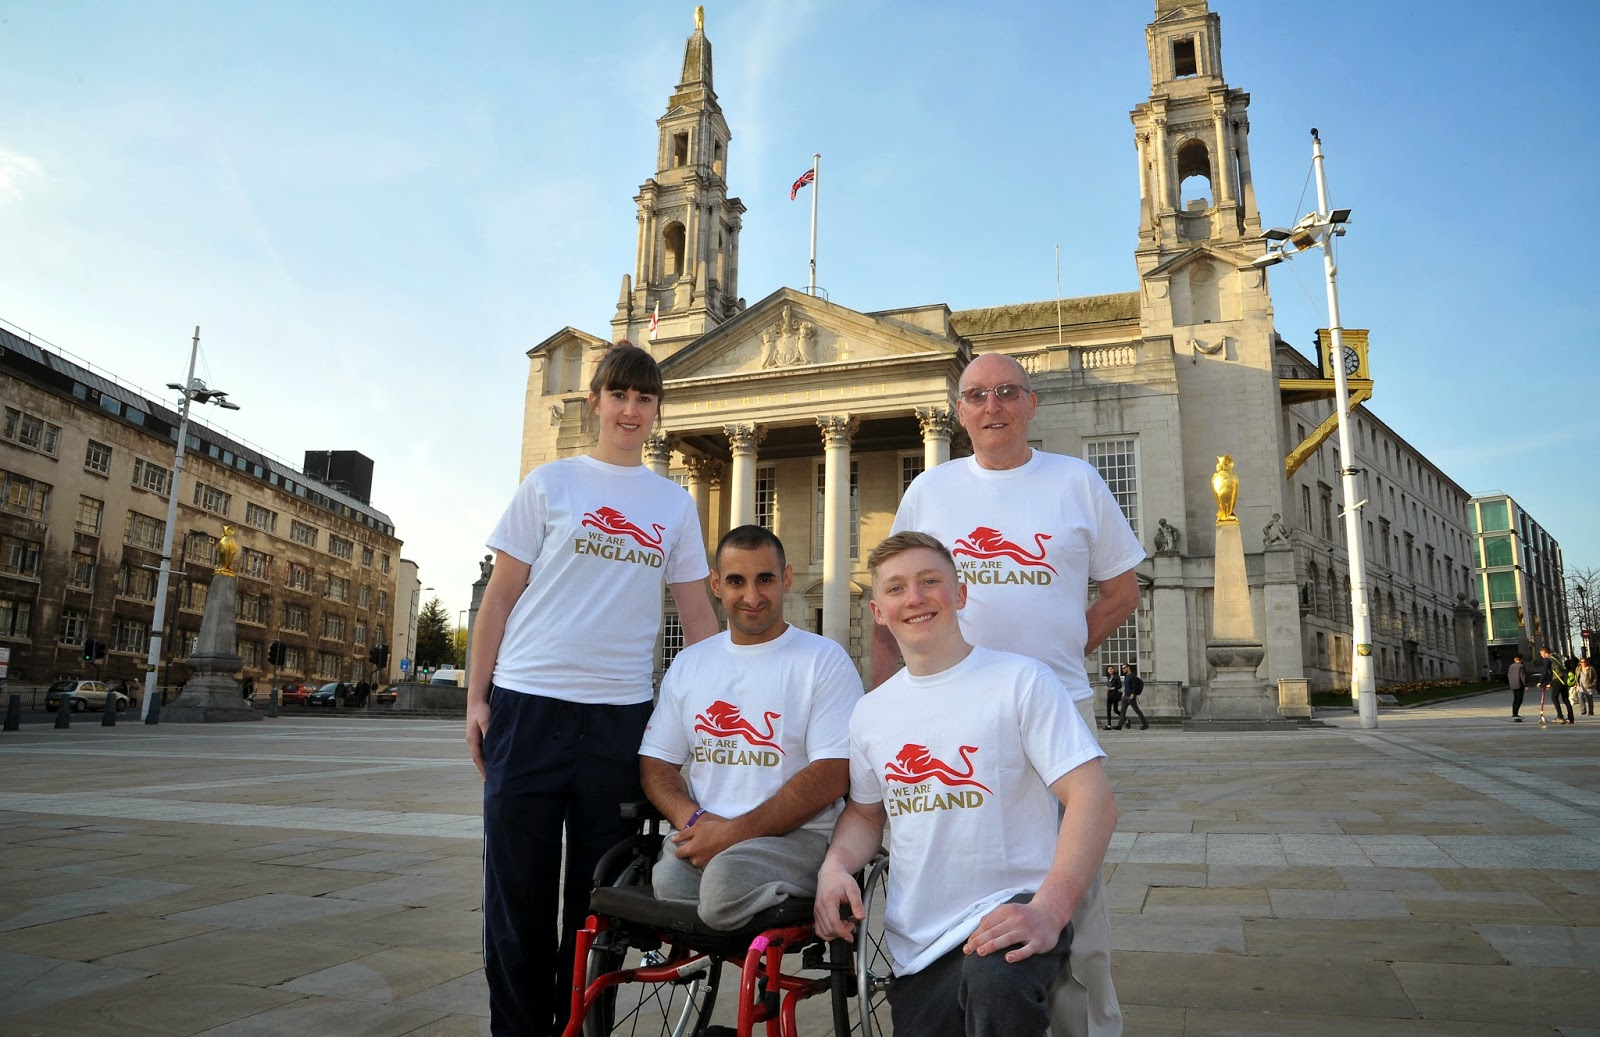 Commonwealth Games batonbearers outside Leeds Civic Hall (from left) Laura Beardsmore, Ali Jawad, Nile Wilson and Norman Stephens